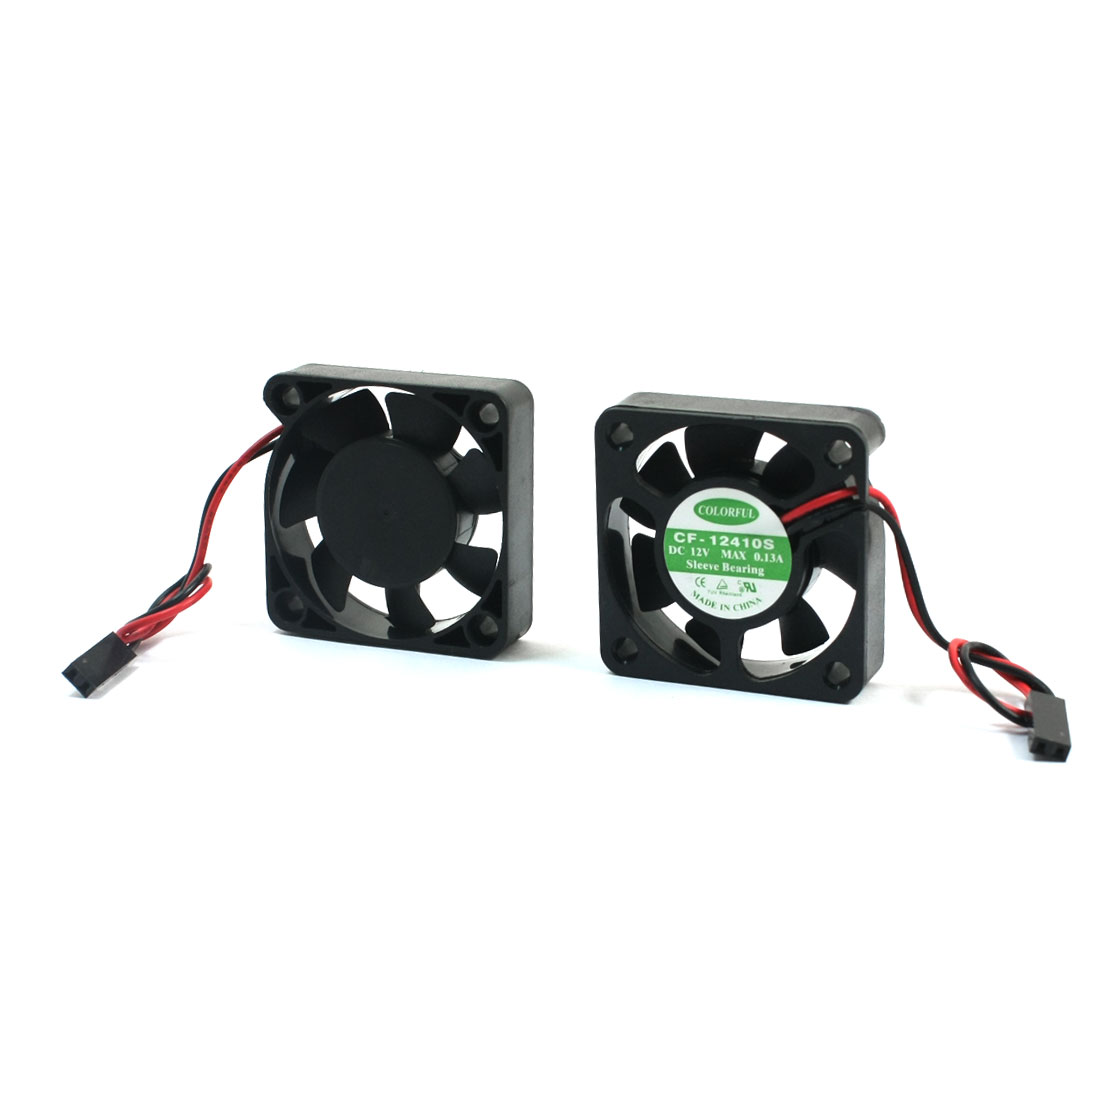 2Pcs 40mm x 40mm 2 Wires 2 Pin Connector Cooling Fan DC 12V 0.13A for Computer